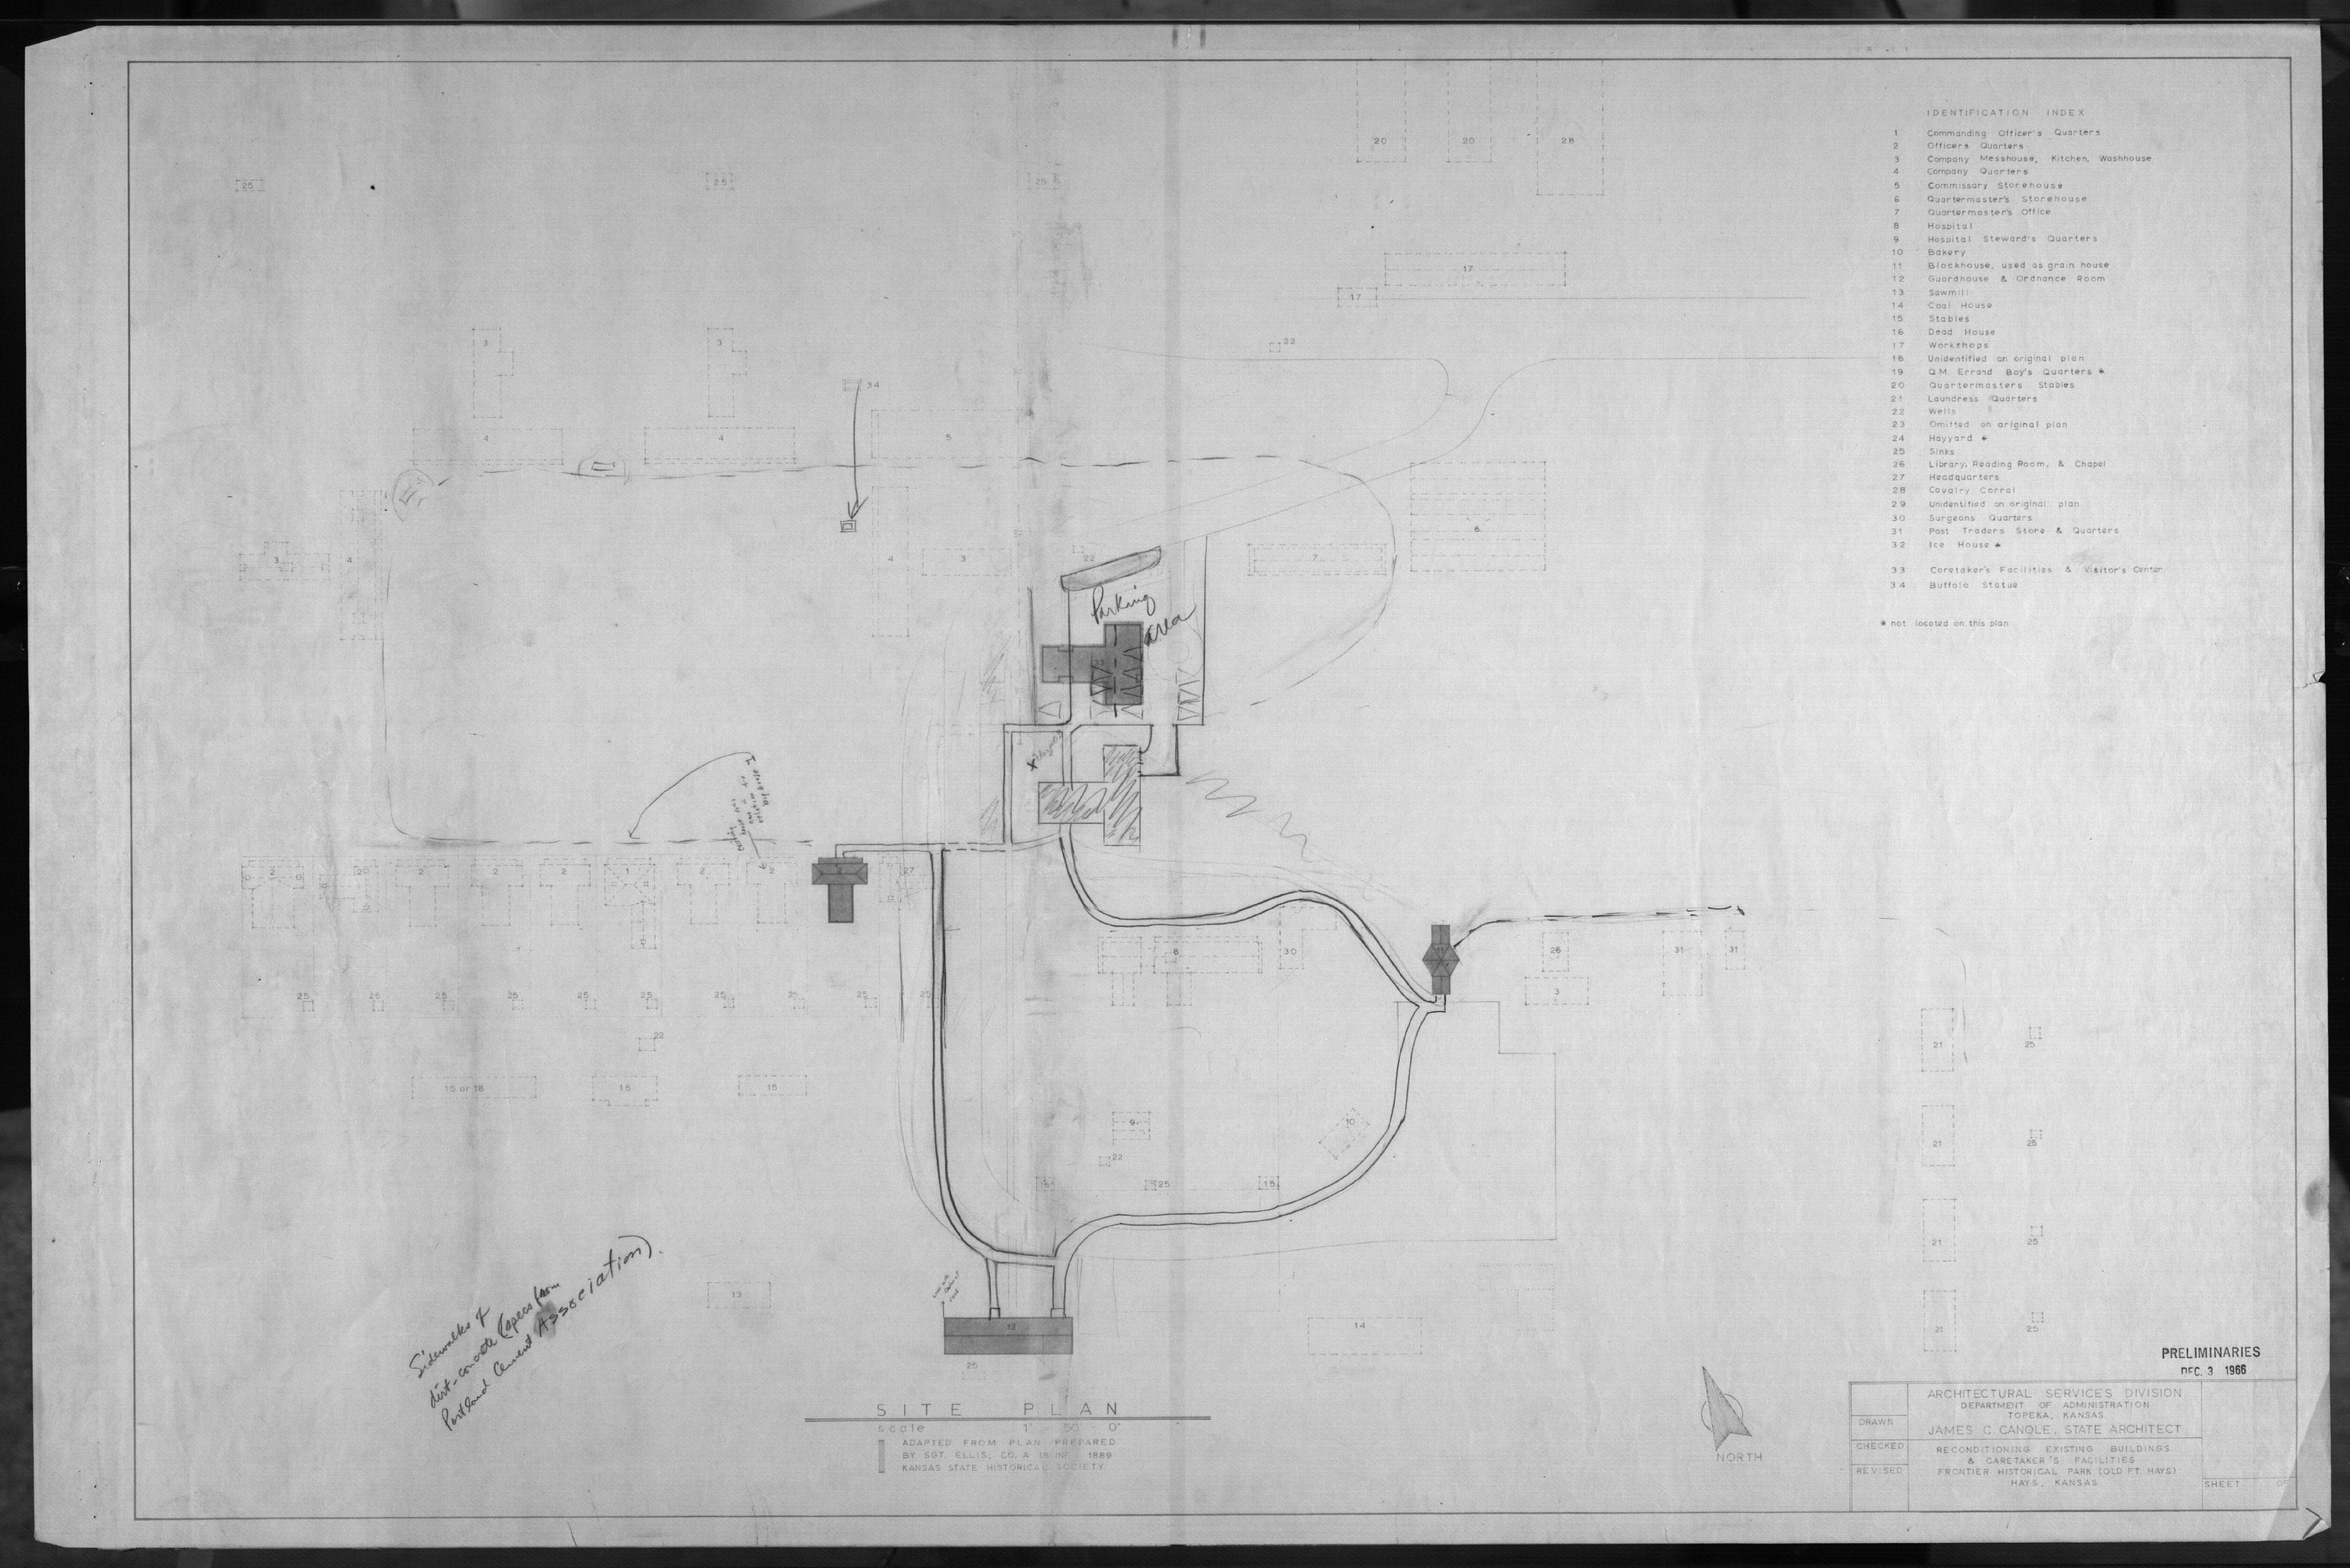 Architectural plans for Frontier Historical Park and Old Fort Hays - 4